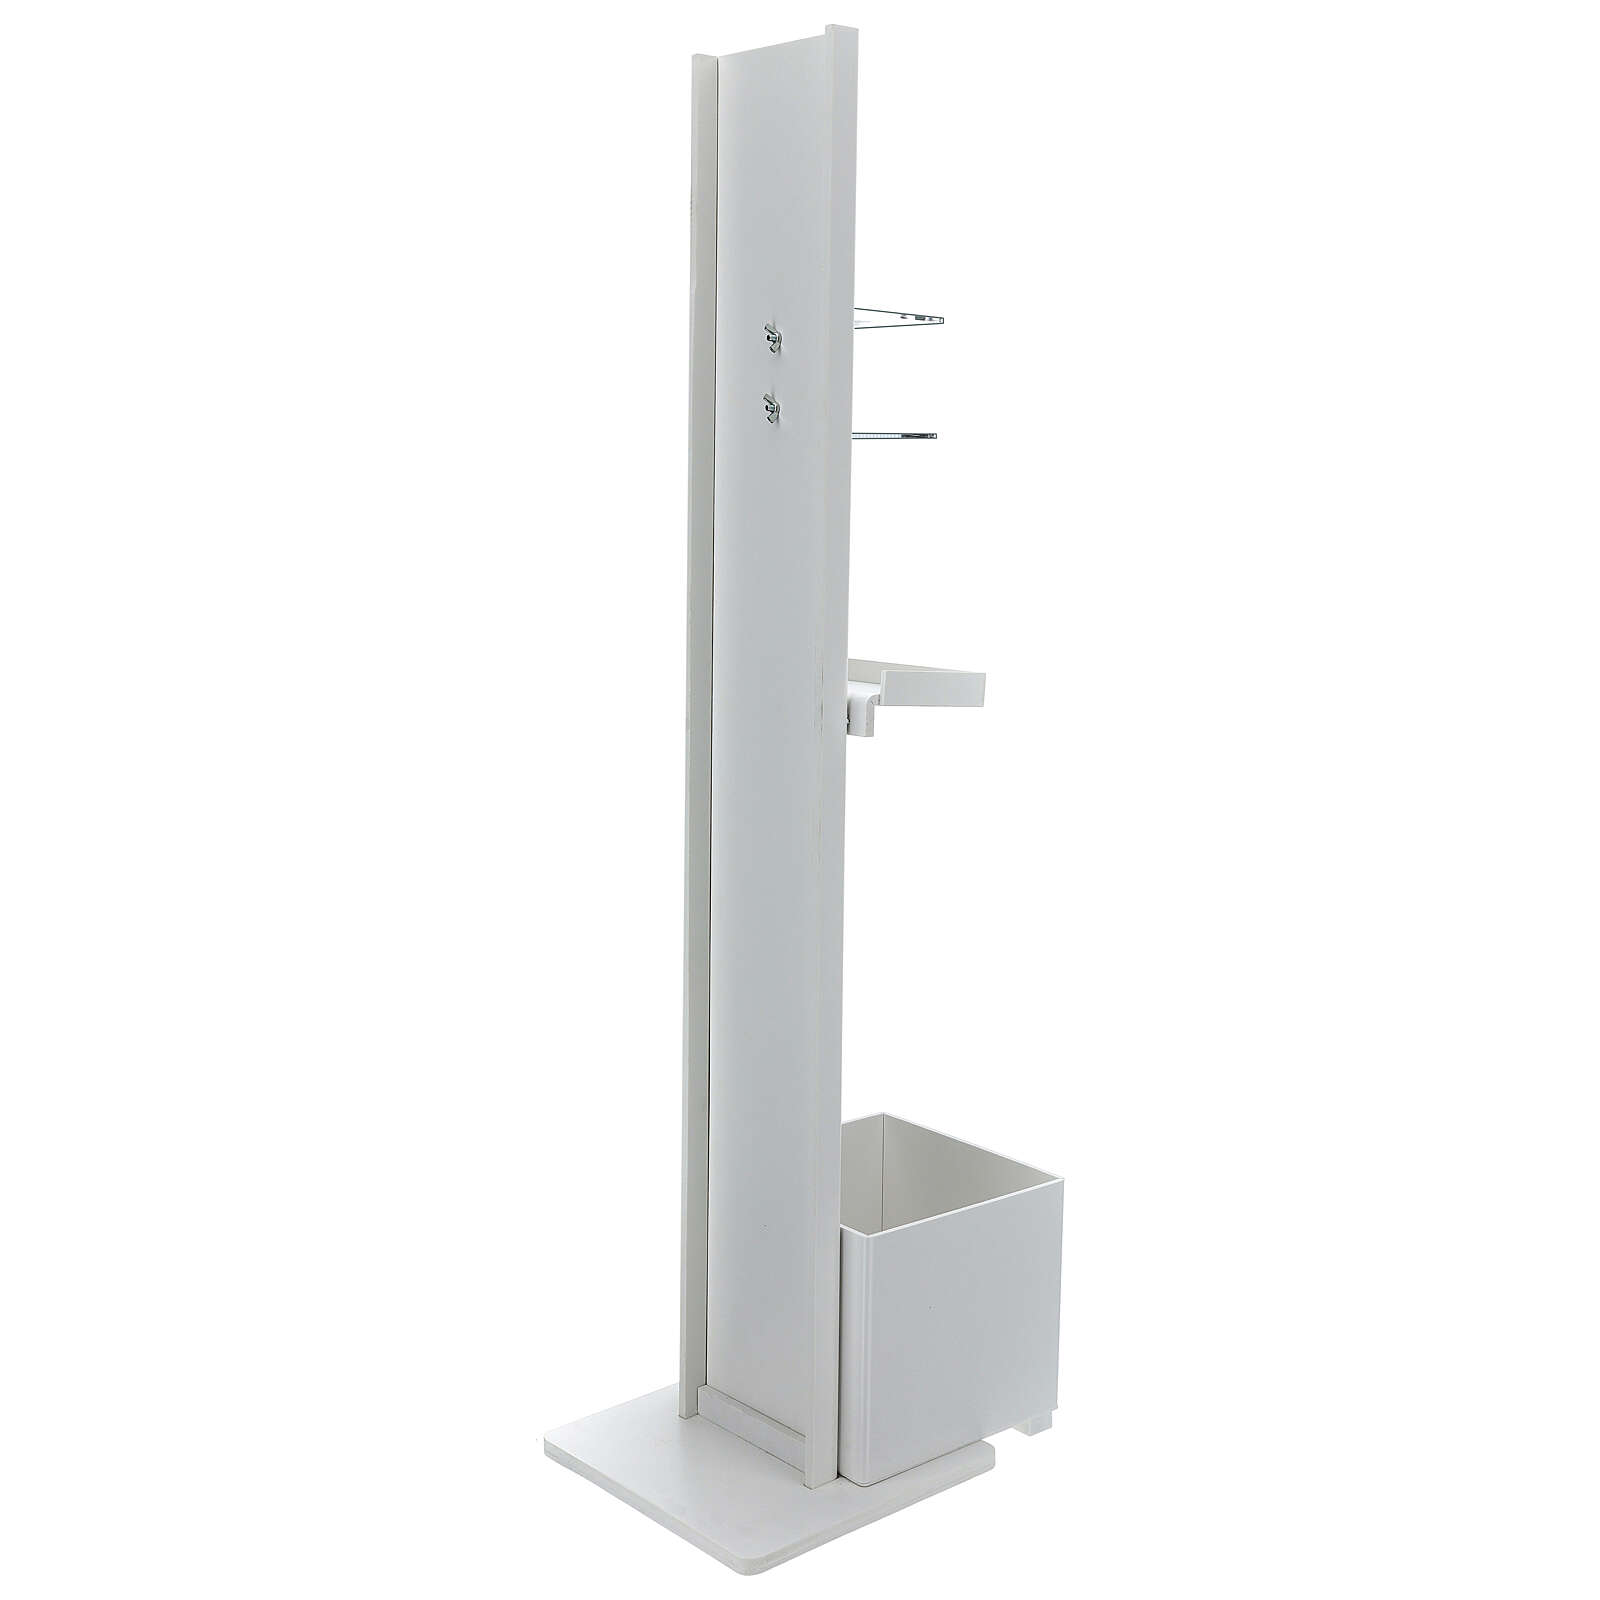 Hand sanitizer dispenser stand with gloves shelf and waste bin OUTDOOR USE 3